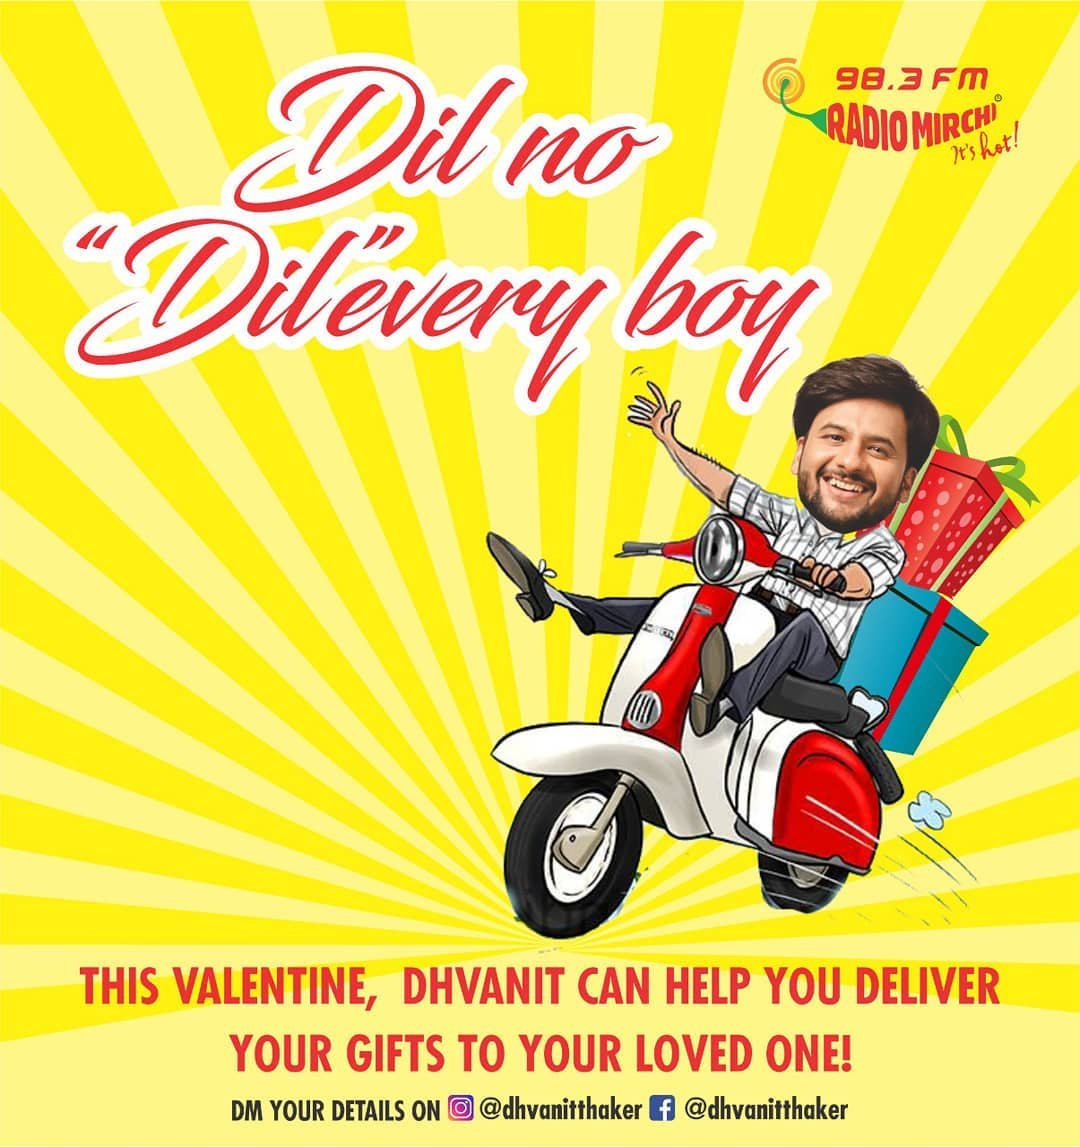 This Valentine's Day, I would be your 'Dil no Delivery boy'! DM me your special gift that you want me to deliver to your partner on your behalf.  P. S: Please dont write your contact details and address in comments.  #dhvanit #dilnodevileryboy #valentinesday #valentine #valentinesday2019 #gift #delivery